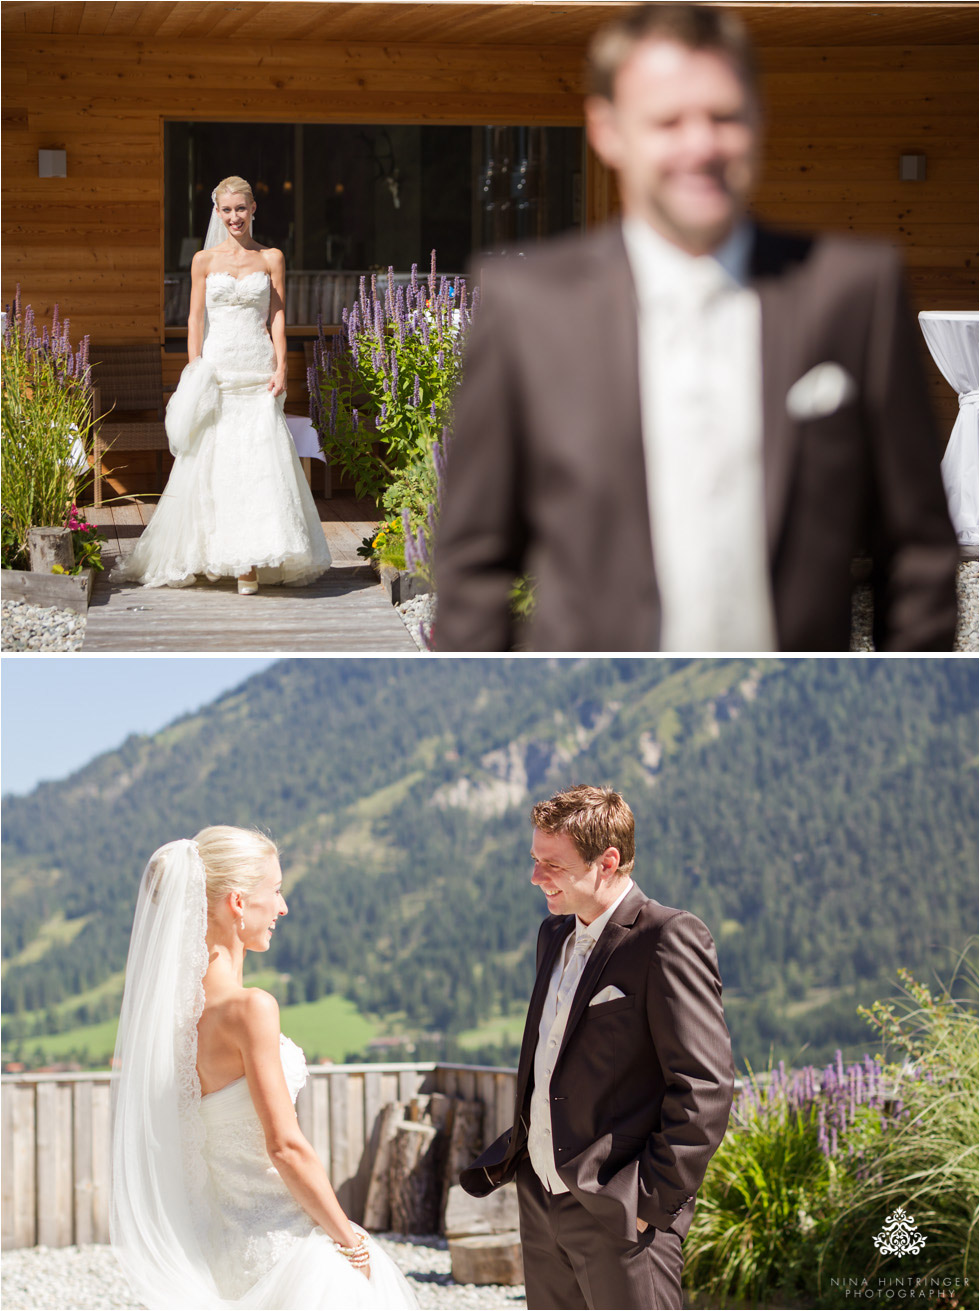 Hochzeitsfotograf Tirol, Hochzeitsfotograf Achensee, Achenkirch, Seealm Achenkirch, Hotel Kronthaler, Tyrol Wedding Photographer, Achensee Wedding Photographer - Blog of Nina Hintringer Photography - Wedding Photography, Wedding Reportage and Destination Weddings